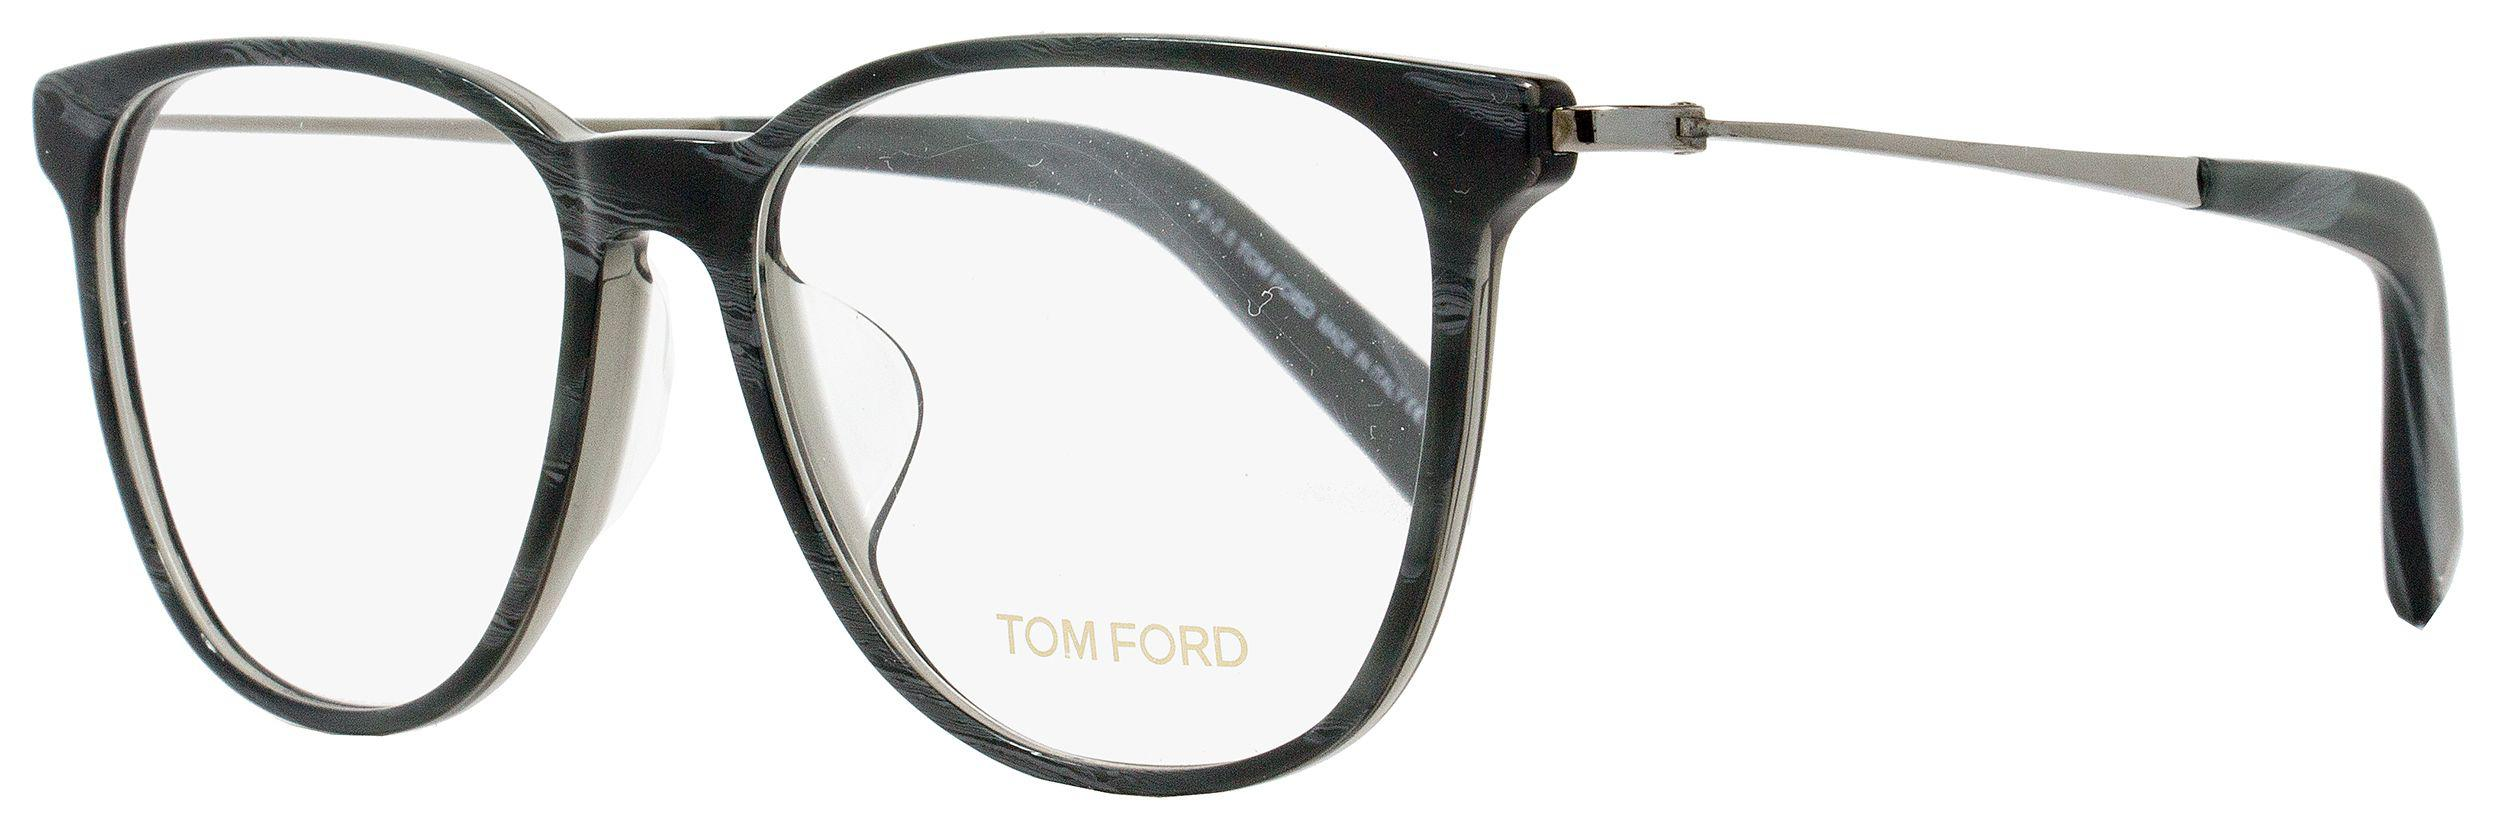 9d649ea4a7a Tom Ford - Multicolor Oval Eyeglasses Tf5384f 020 Size  53mm Gray Horn ruthenium  Ft5384. View fullscreen